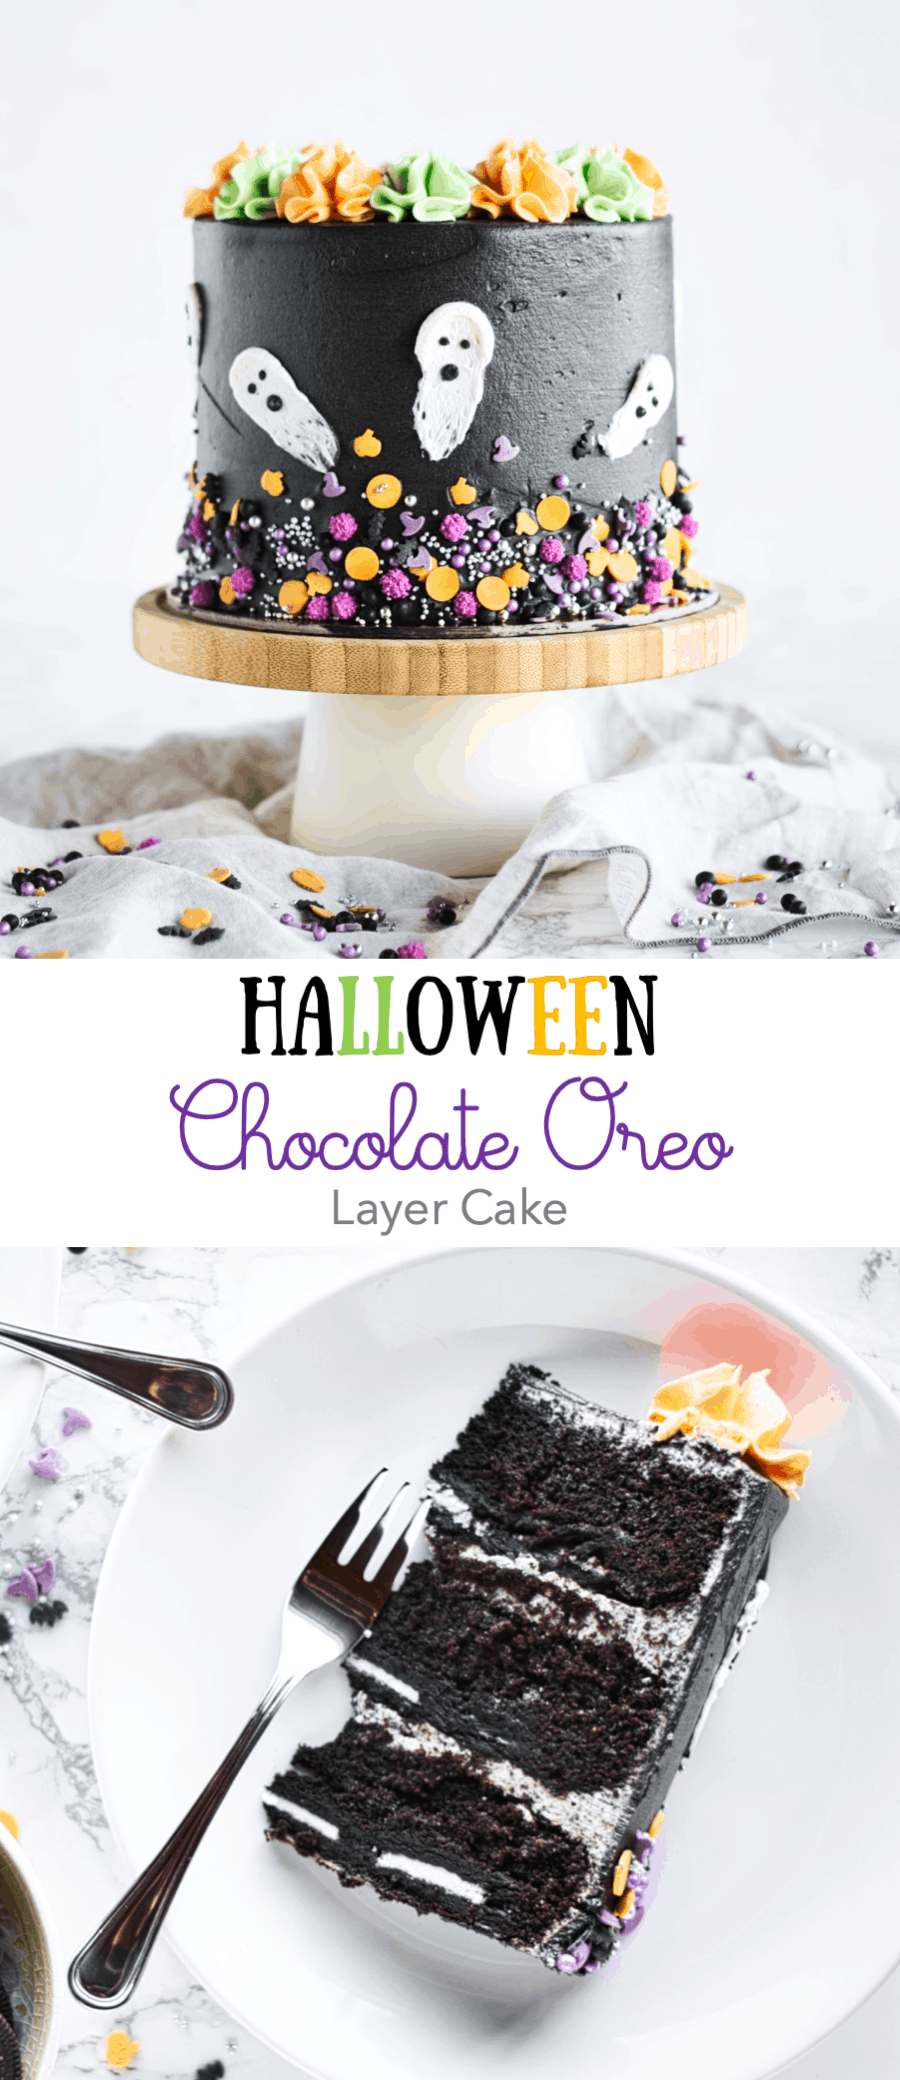 Chocolate Oreo Cake – Halloween Edition!